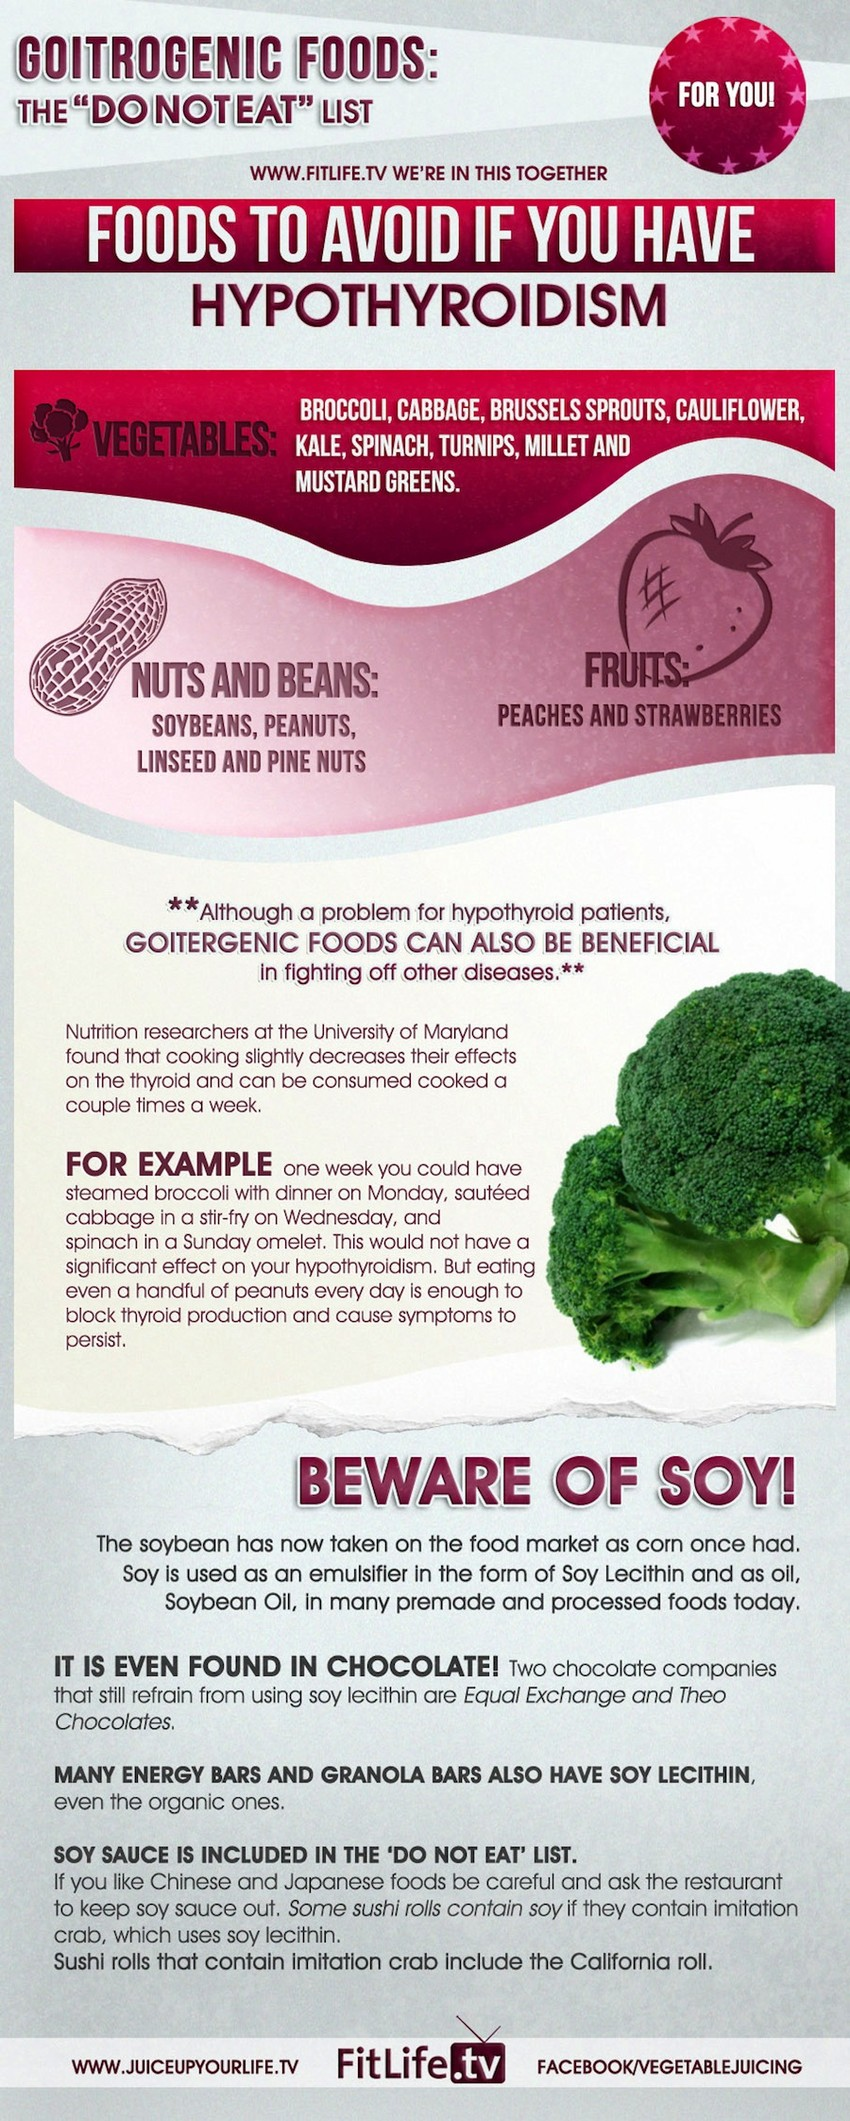 Do Not Eat List For Hypothyroidism Infographic